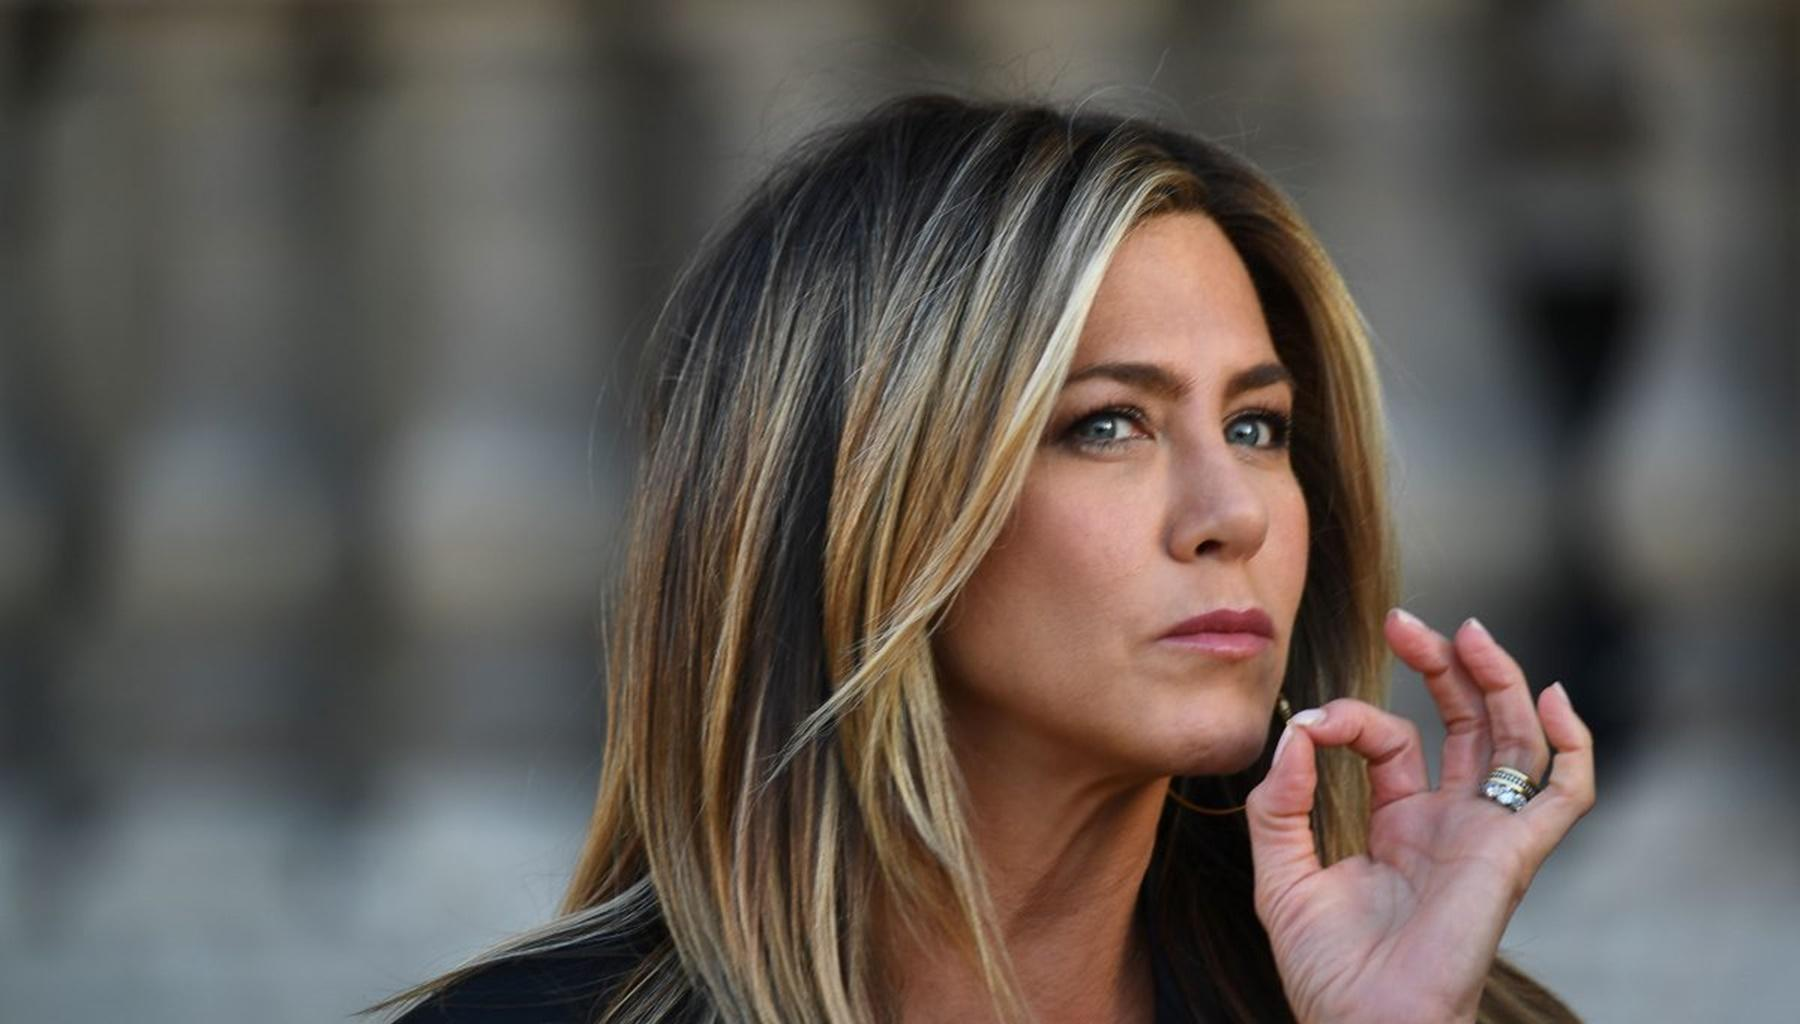 After Brad Pitt Sent Tongue Wagging With Jennifer Aniston's Birthday Party -- Now, He Is Sending Her Love Signals -- Angelina Jolie Is Still Feeling The Shock